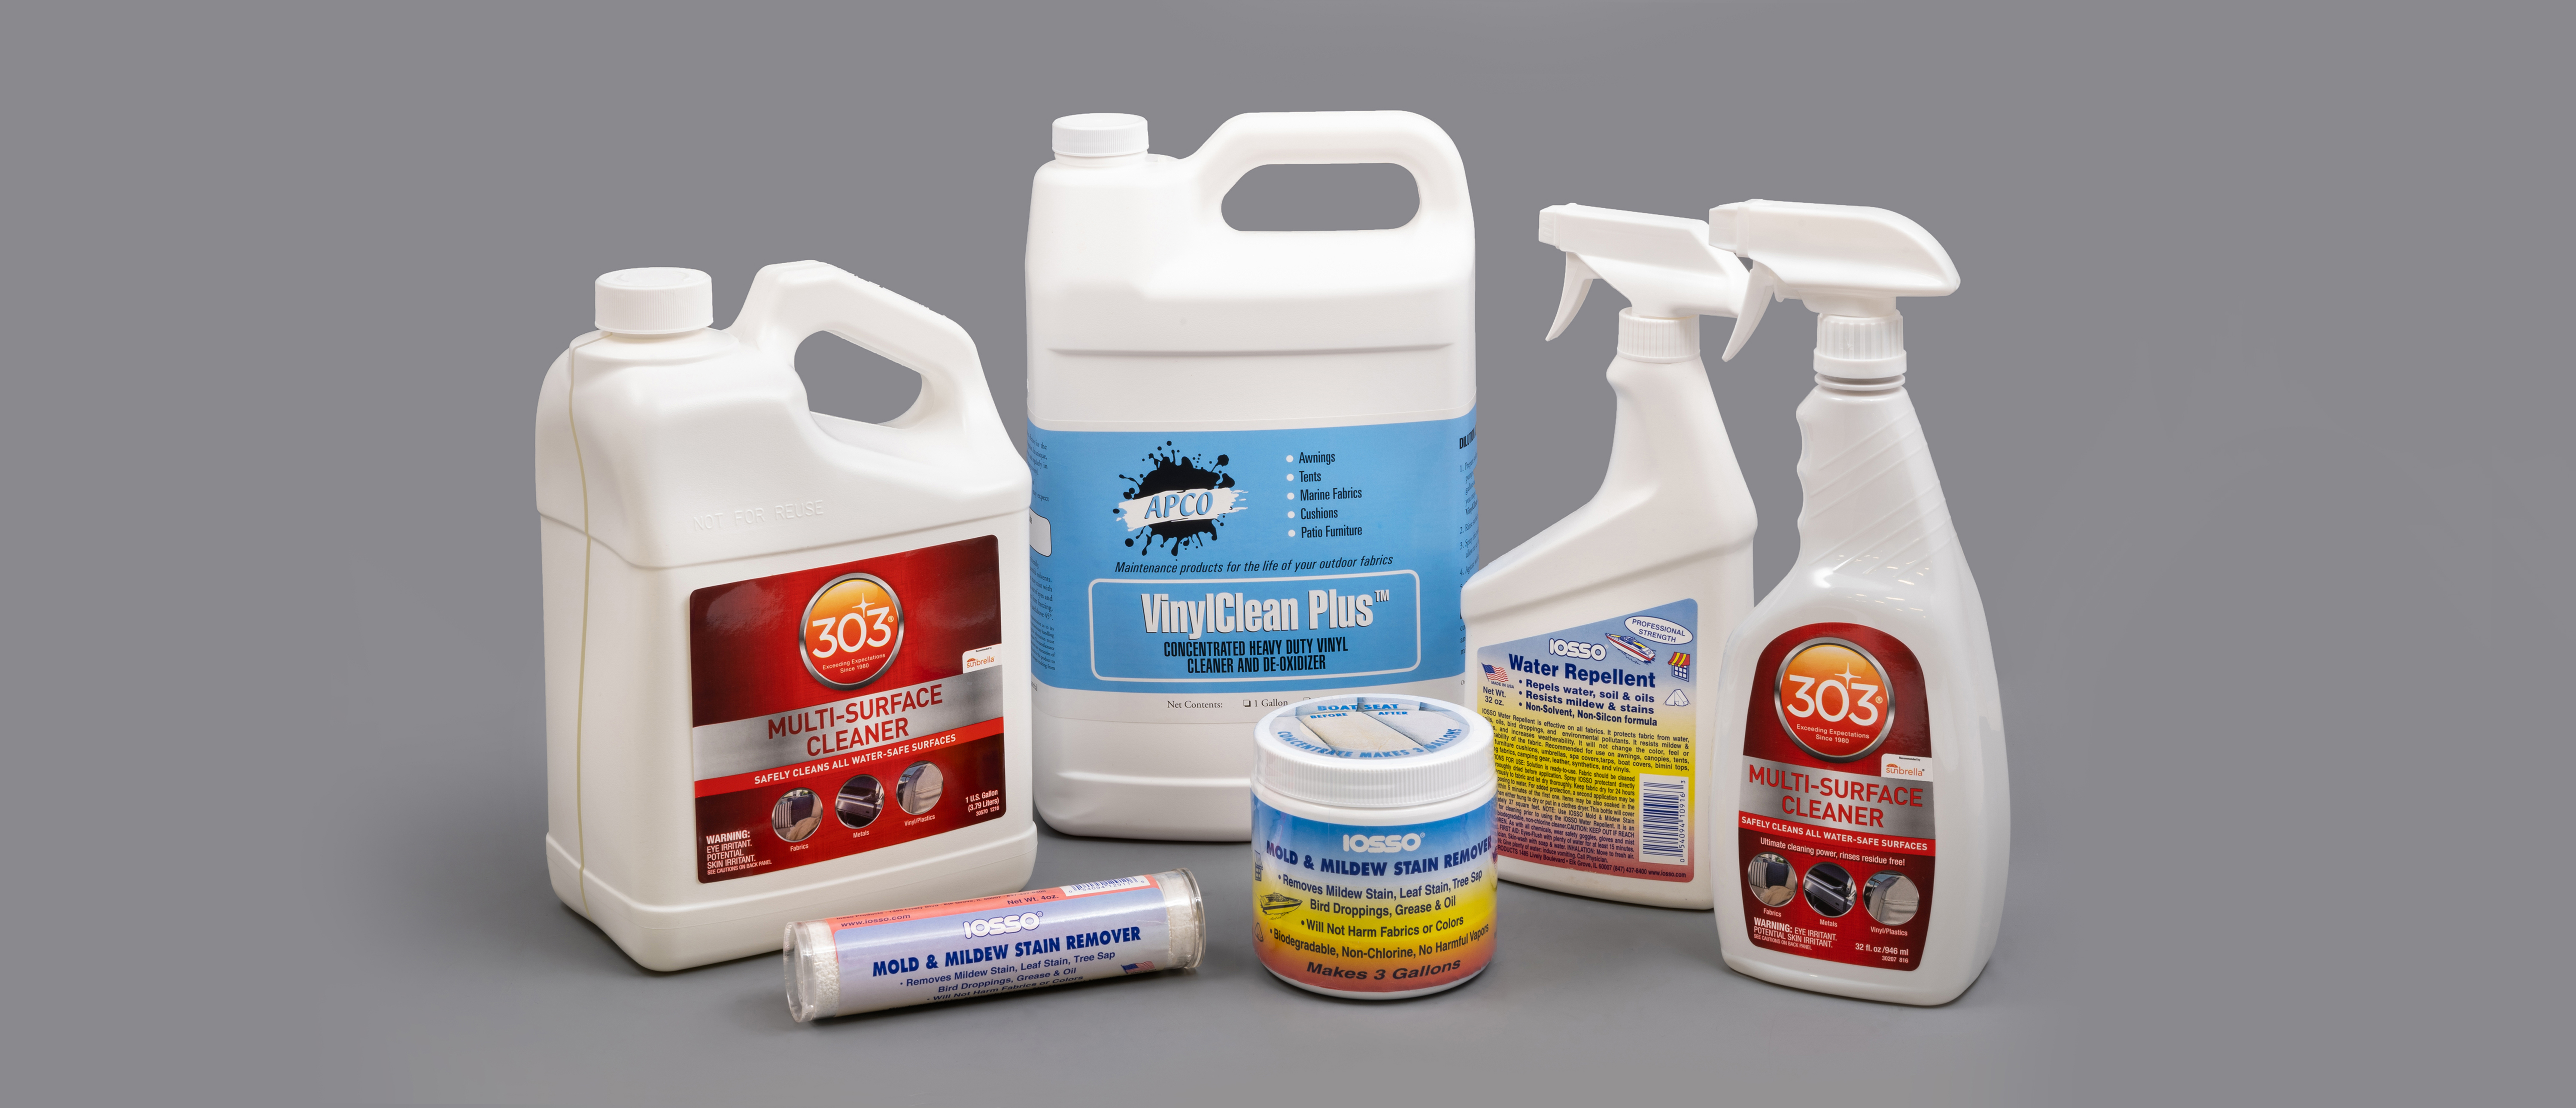 FabricCleaningProducts